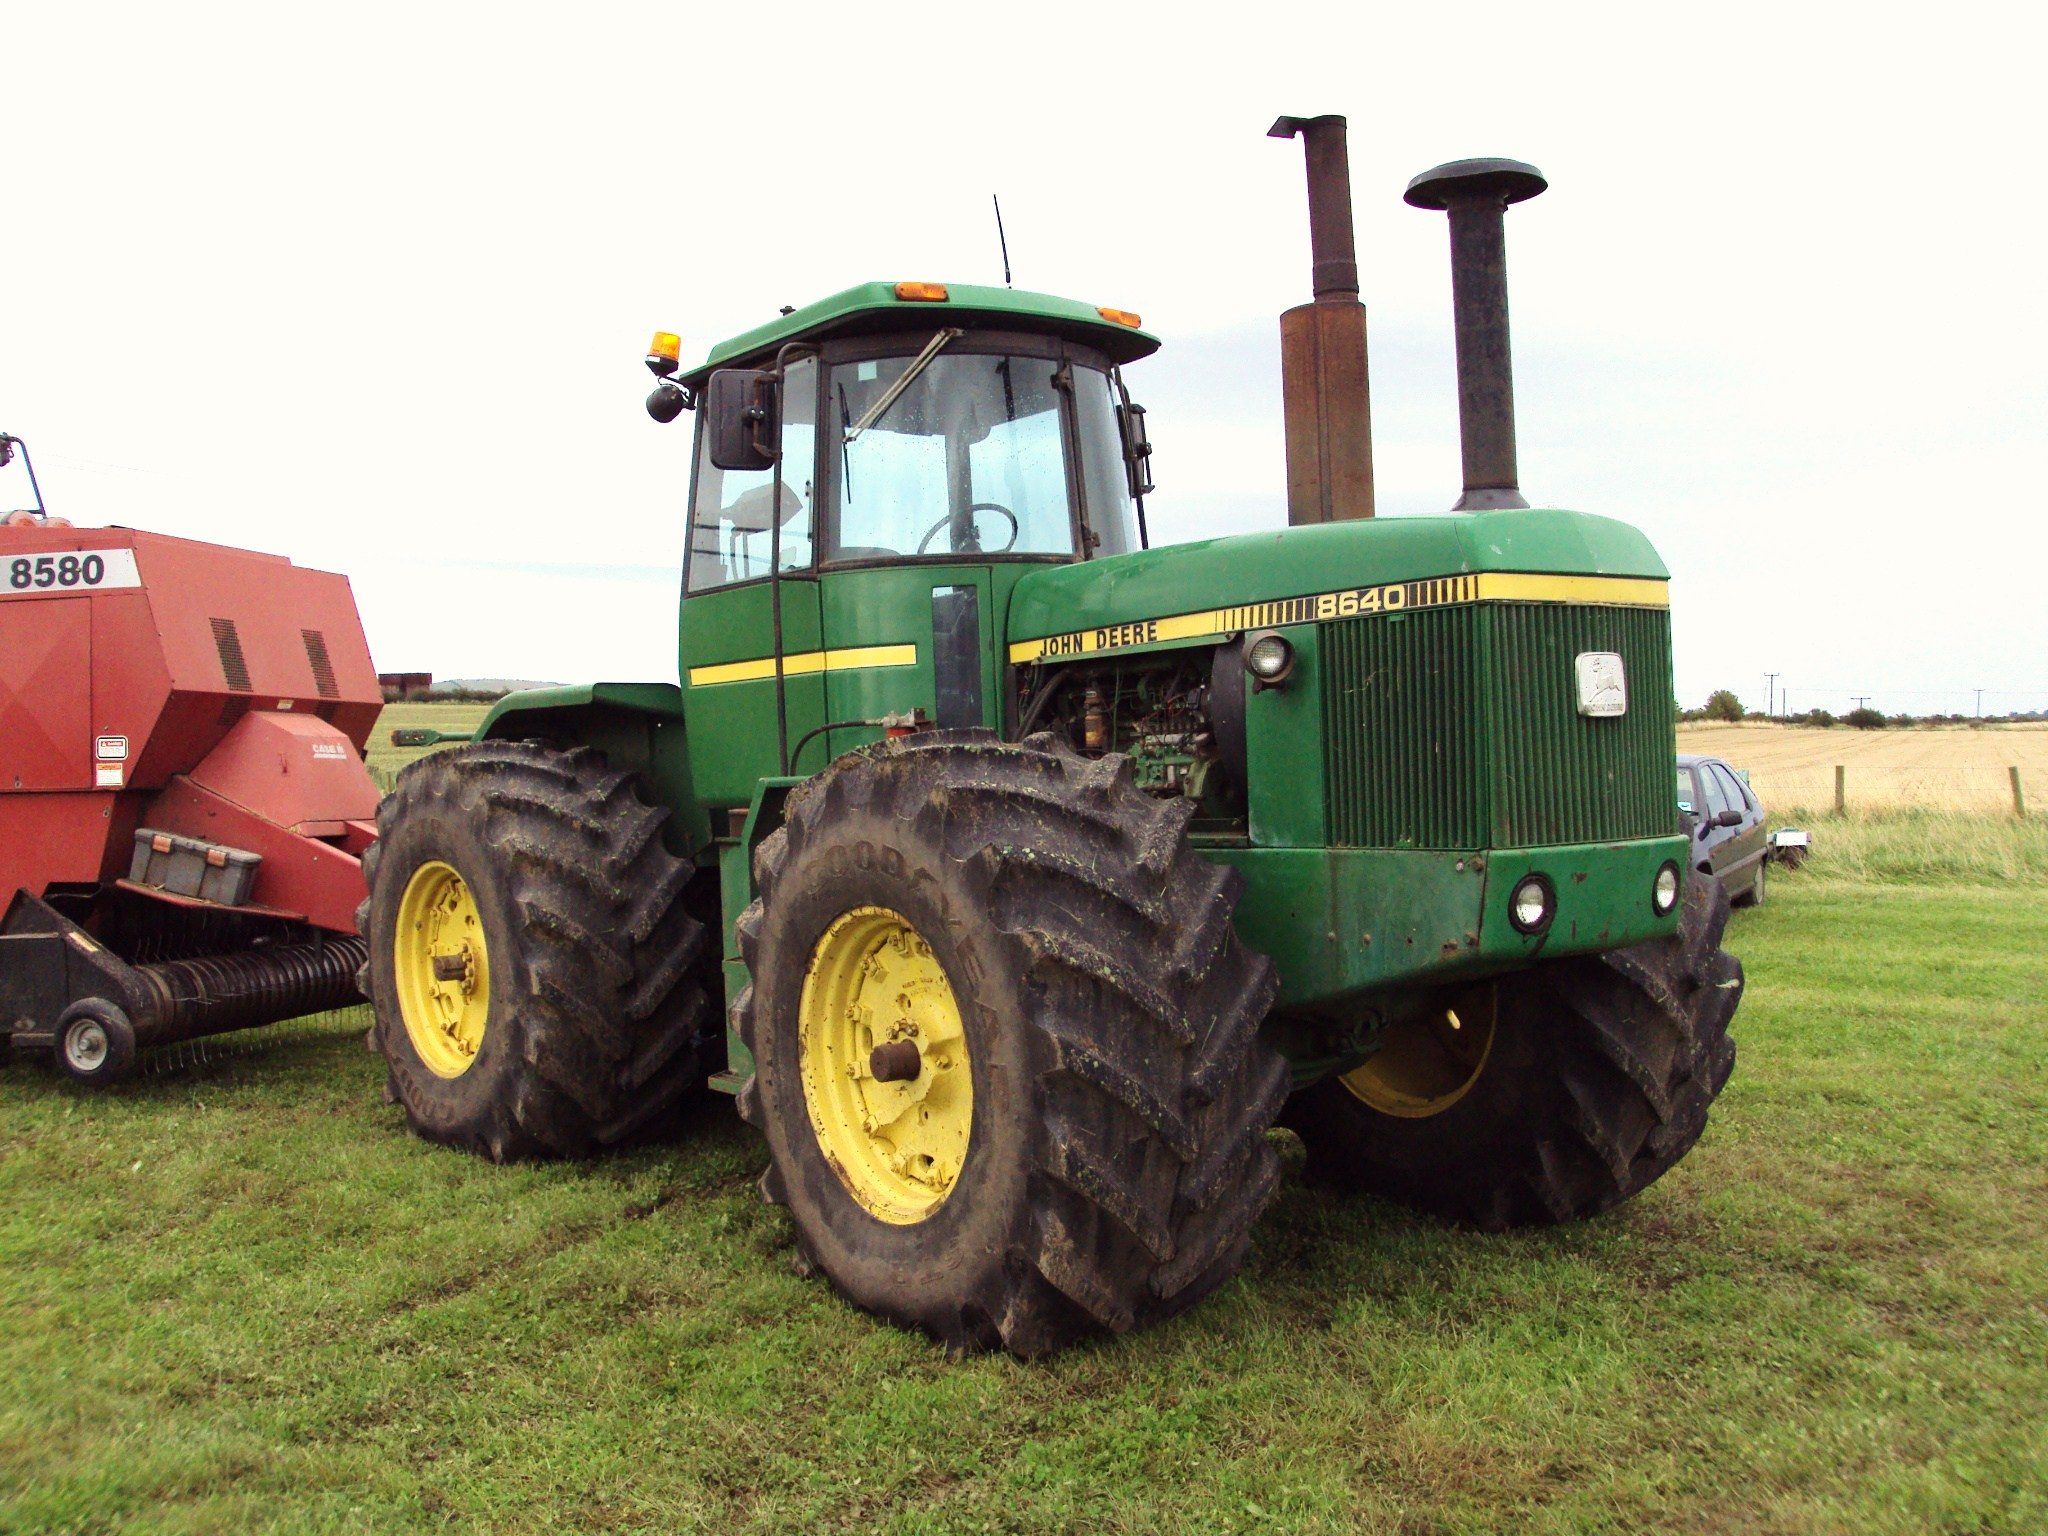 John Deere 8640 Wiring Diagram Manual Of 200 Info List Tractors Tractor Construction Plant Wiki Rh Wikia Com